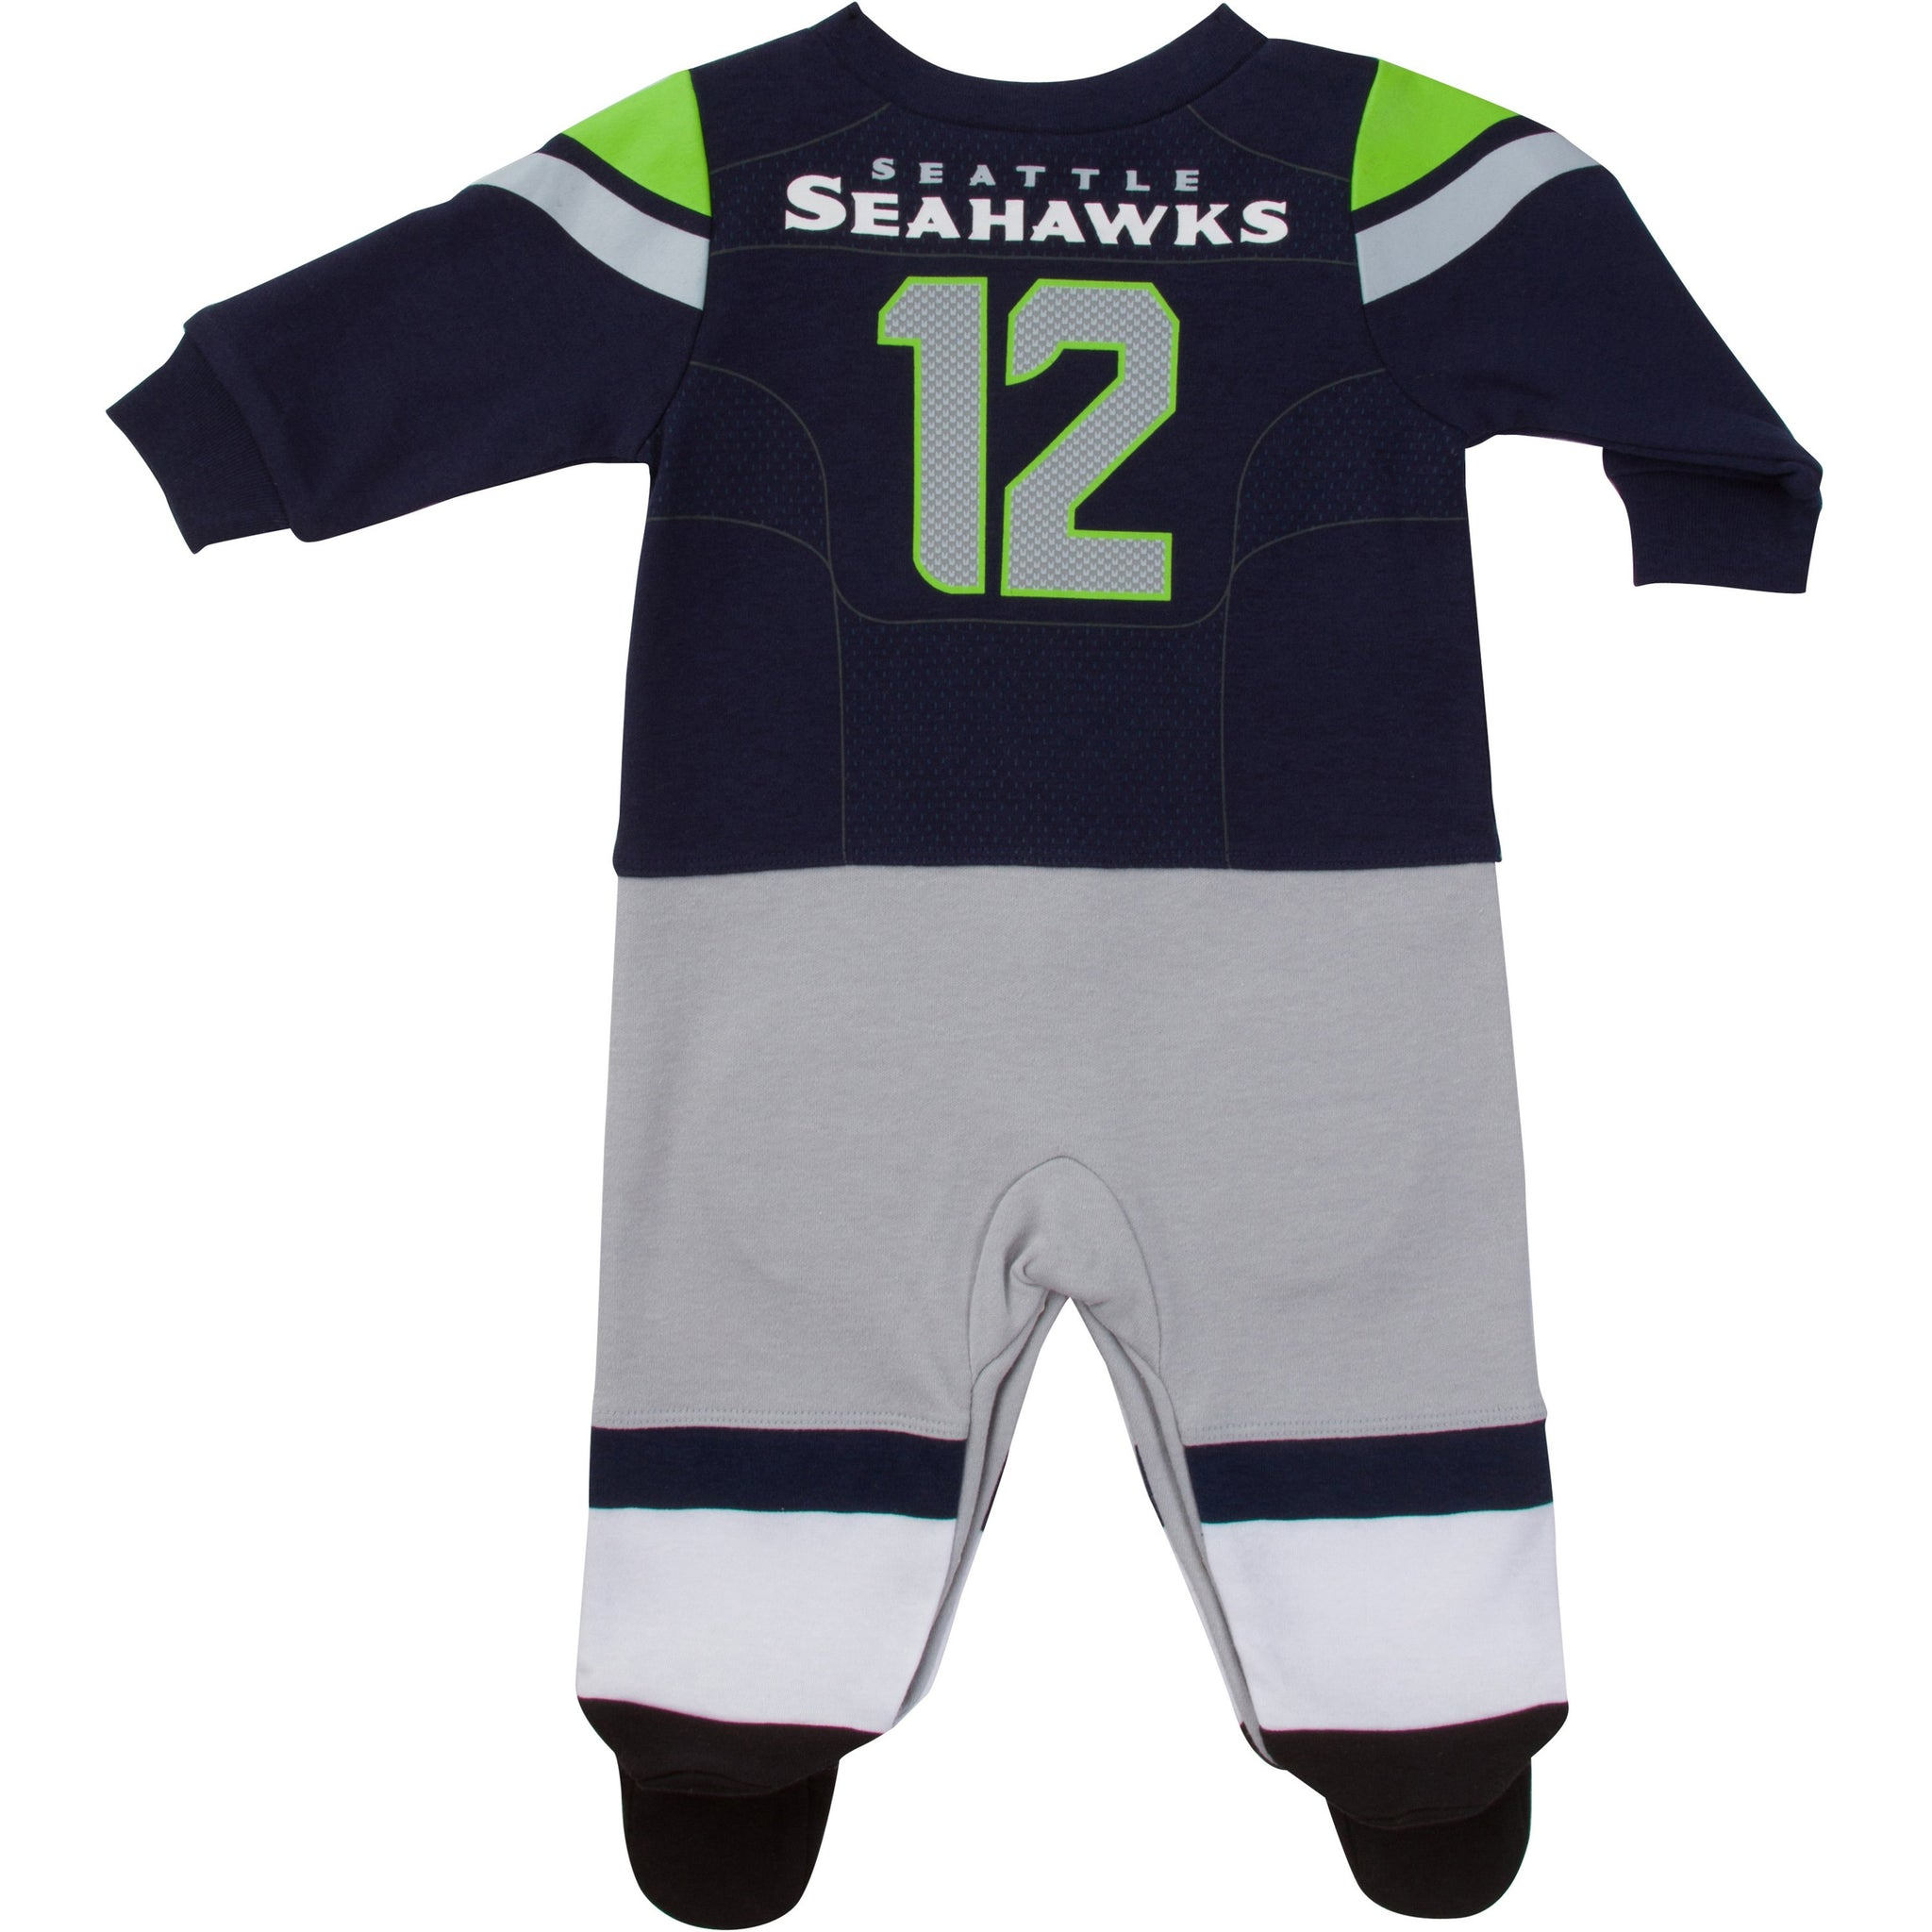 Seattle Seahawks Baby Boys Footed Footysuit